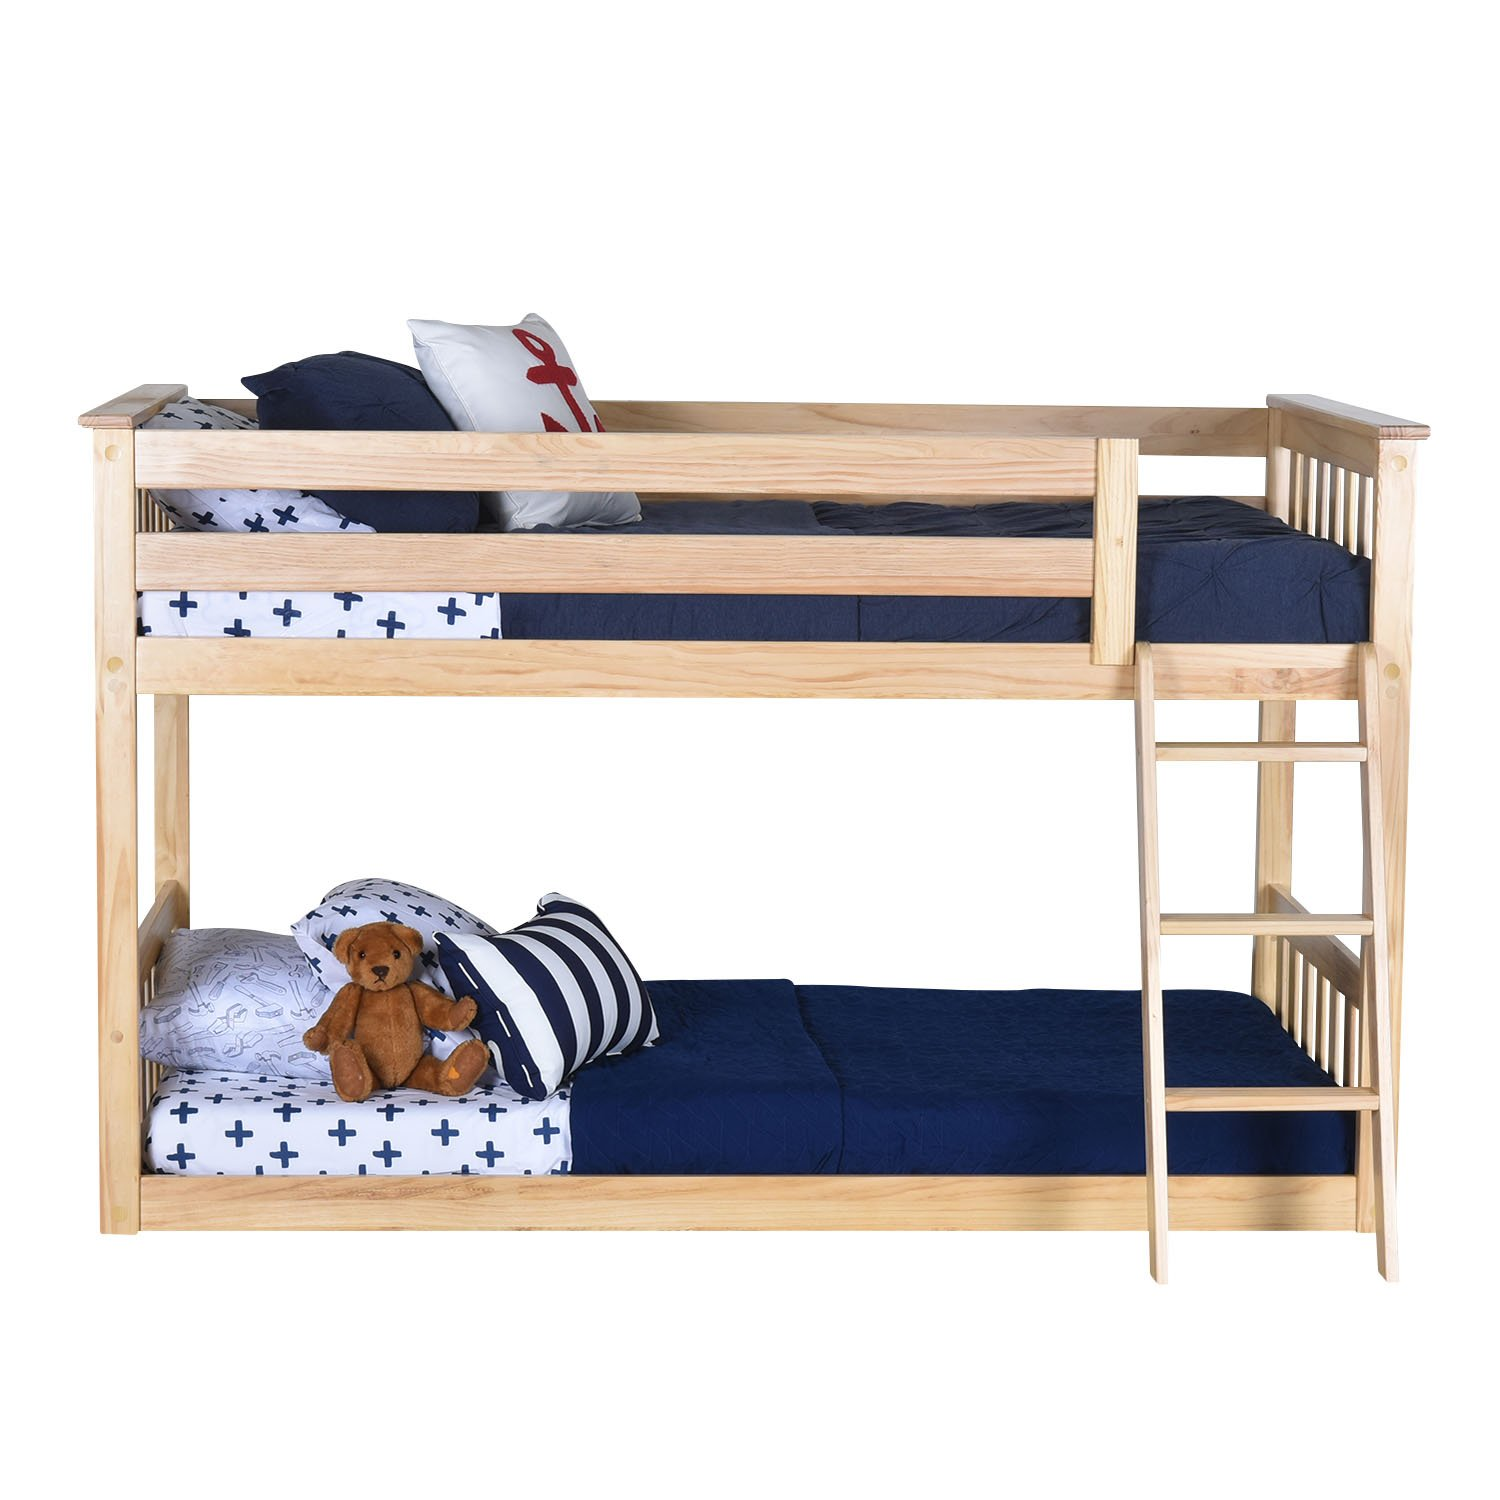 diy old low to how ceiling bed transform beds twin bunk an into